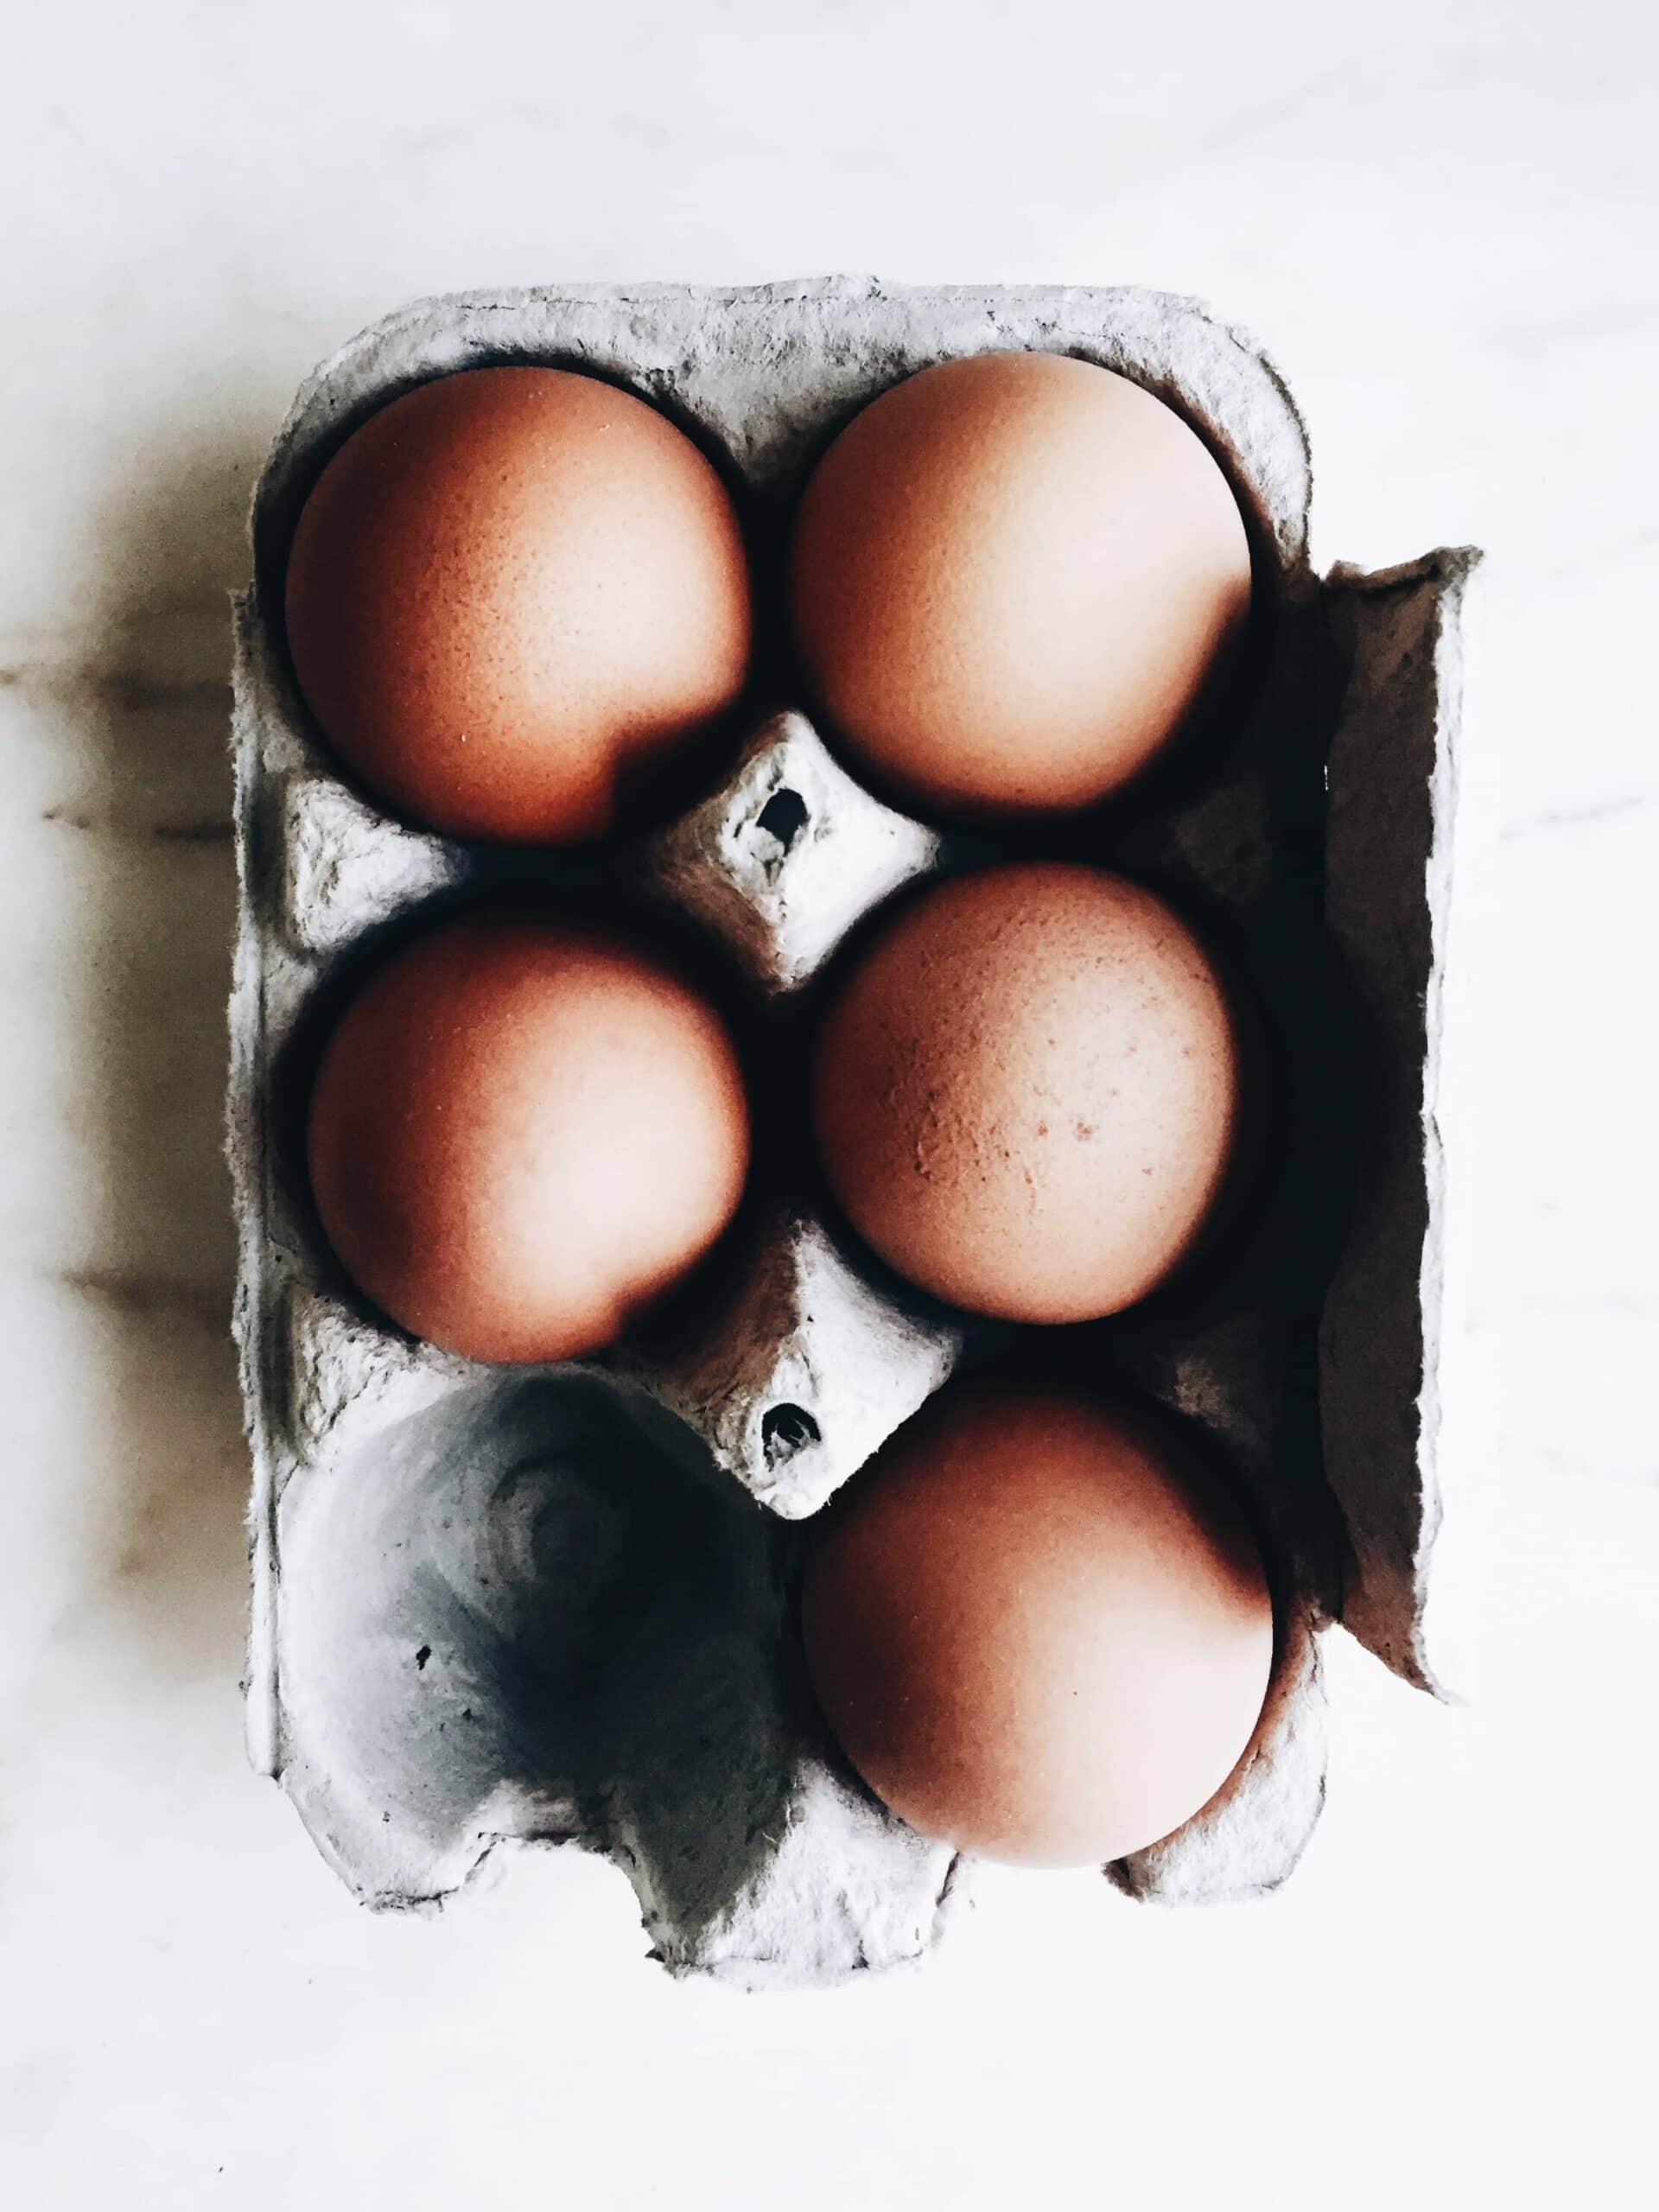 Here are a couple easy methods of how to bring eggs to room temperature quickly and efficiently for baking without headache.